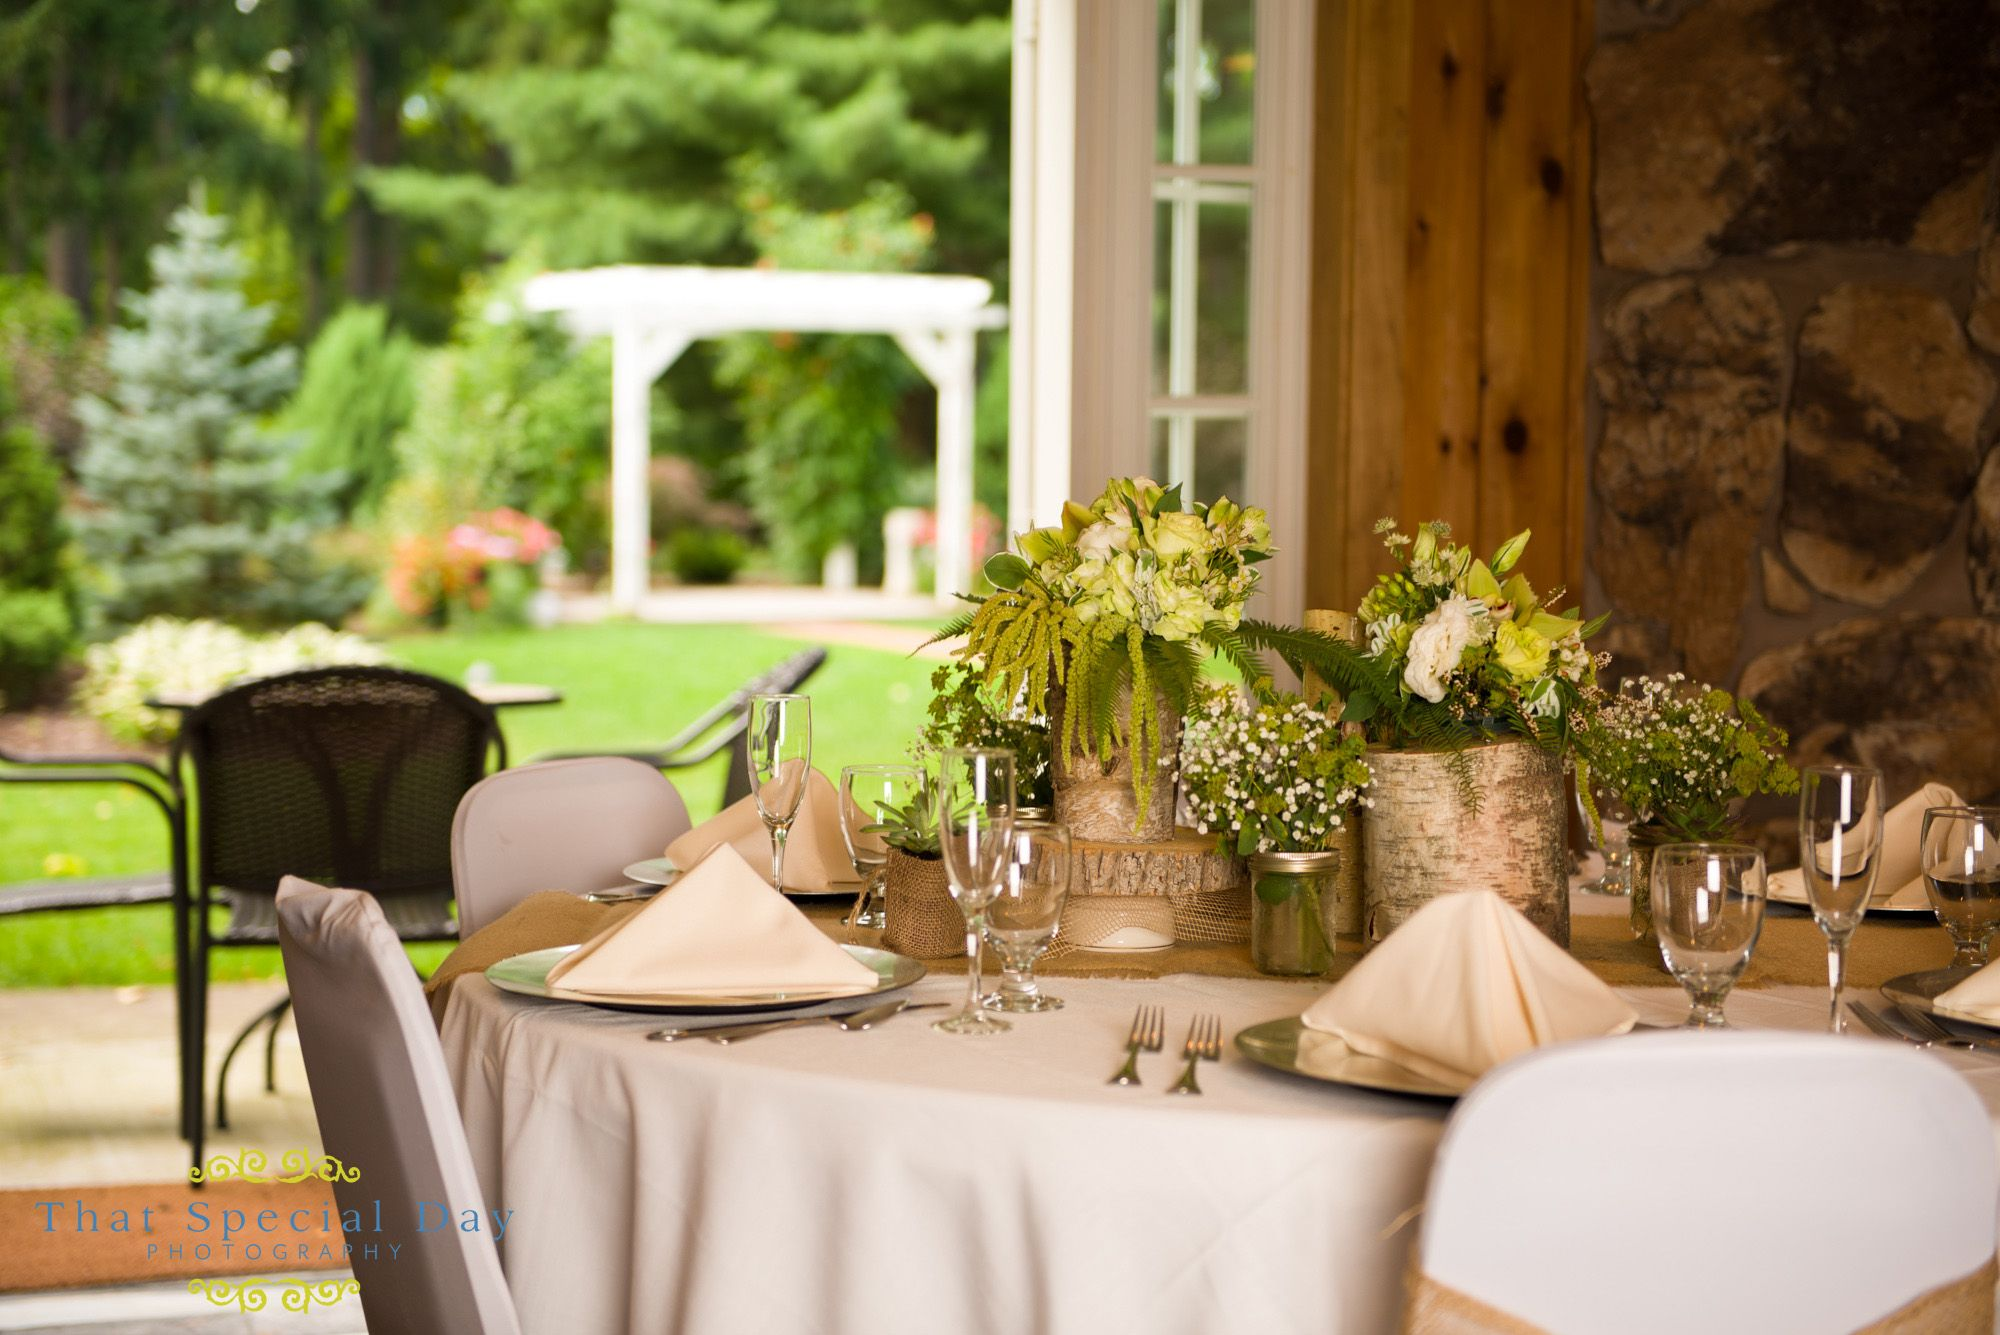 The Adirondack room opens up to our beautifully landscaped